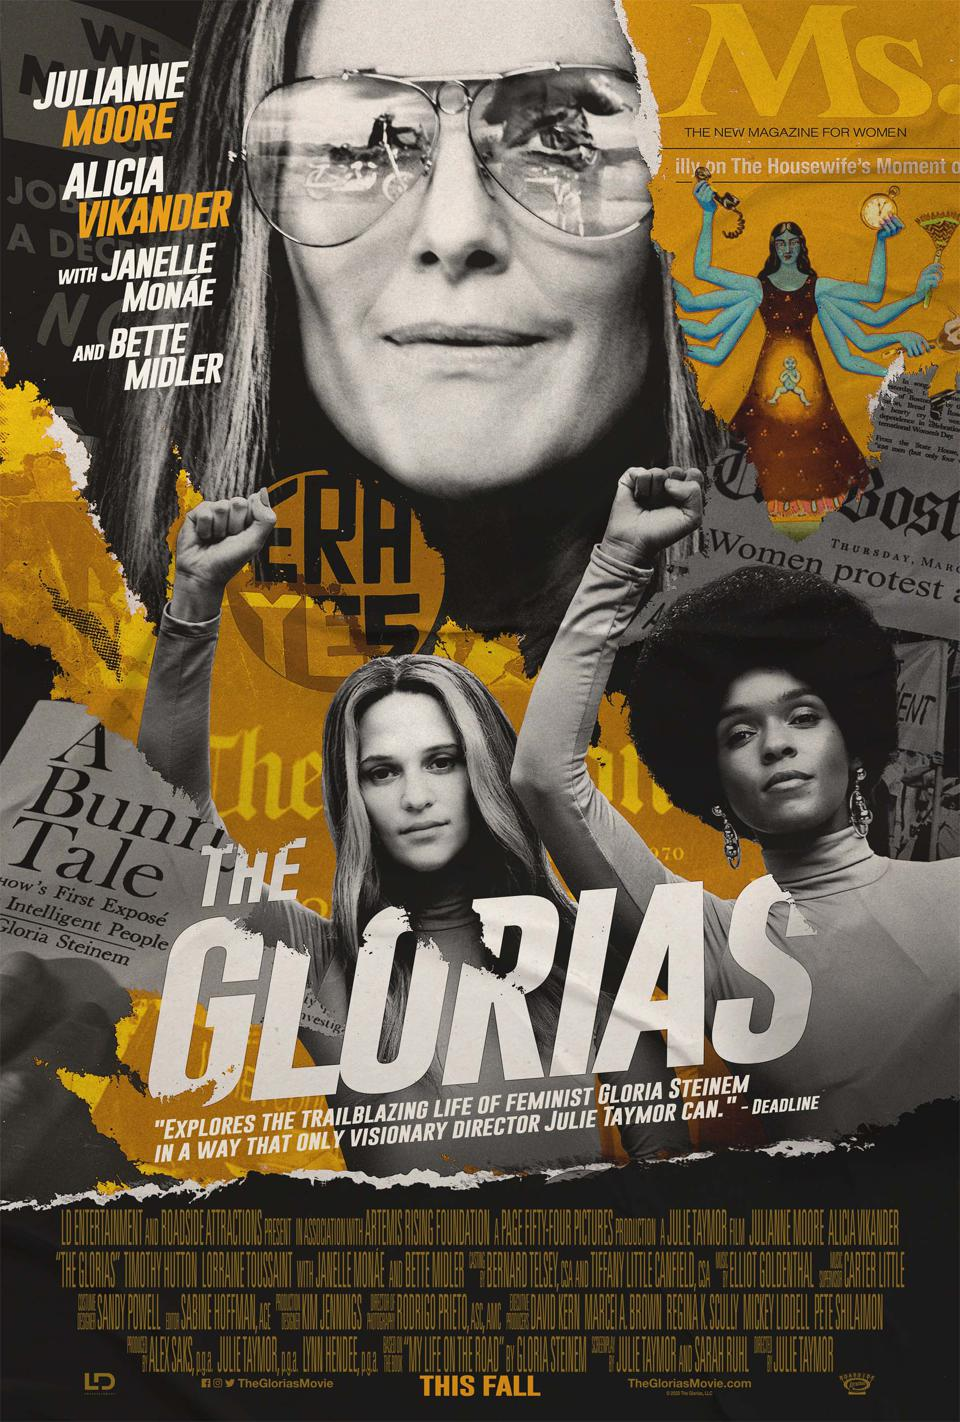 The film The Glorias depicts the life of Gloria Steinem